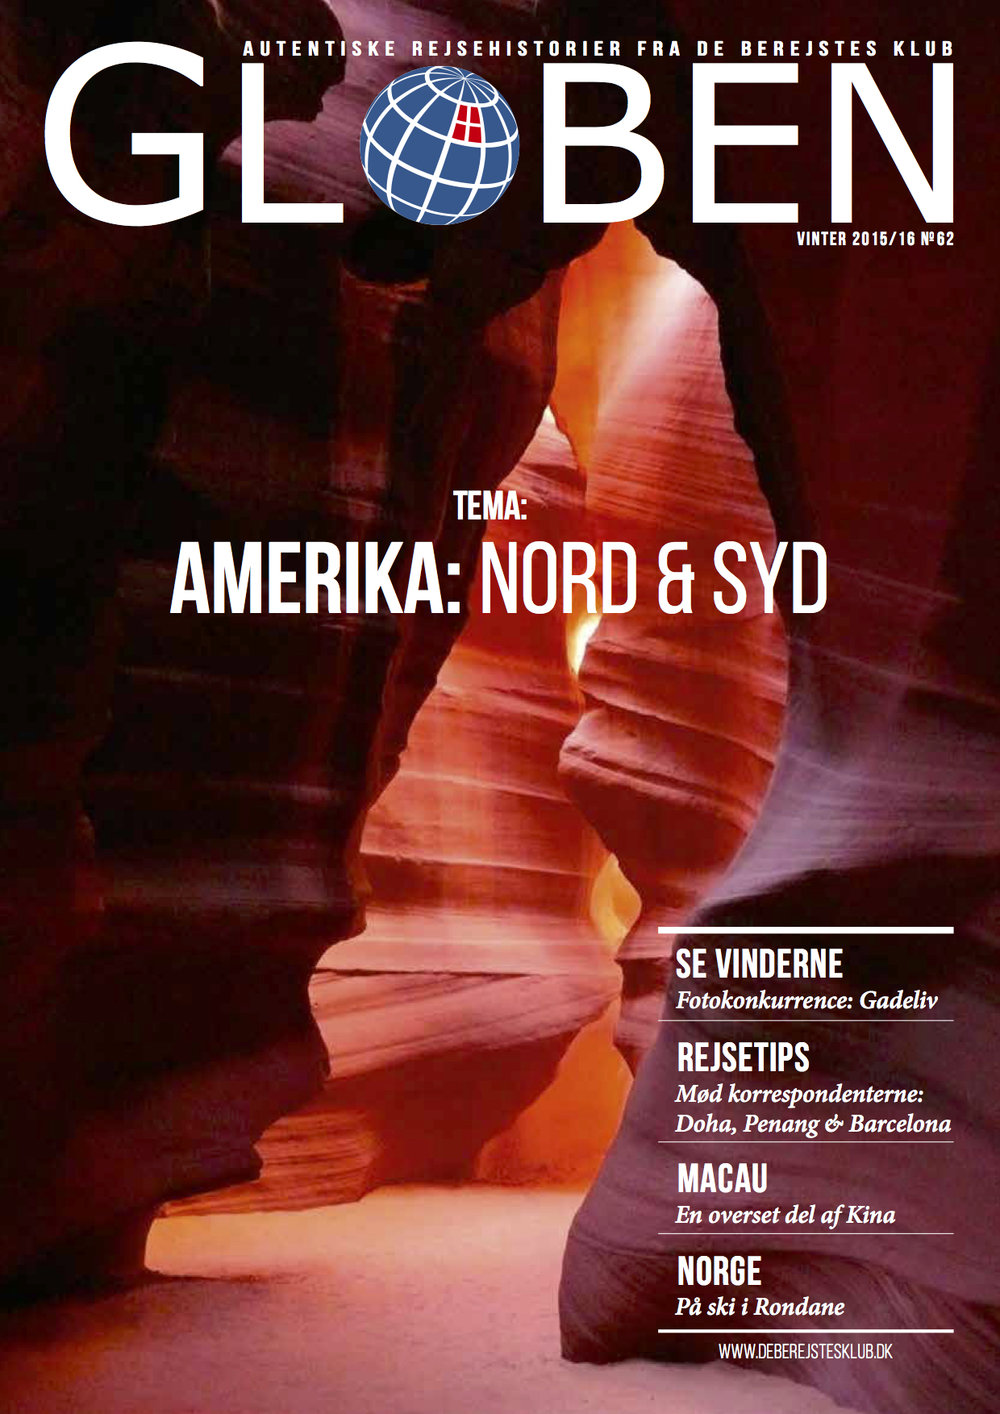 Issue 62: Amerika: Nord & Syd   America: North & South is the theme for this issue. The stories take us from USA, Mexico, Cayman Islands, Colombia, Ecuador, down to Argentina. Download the issue  here .